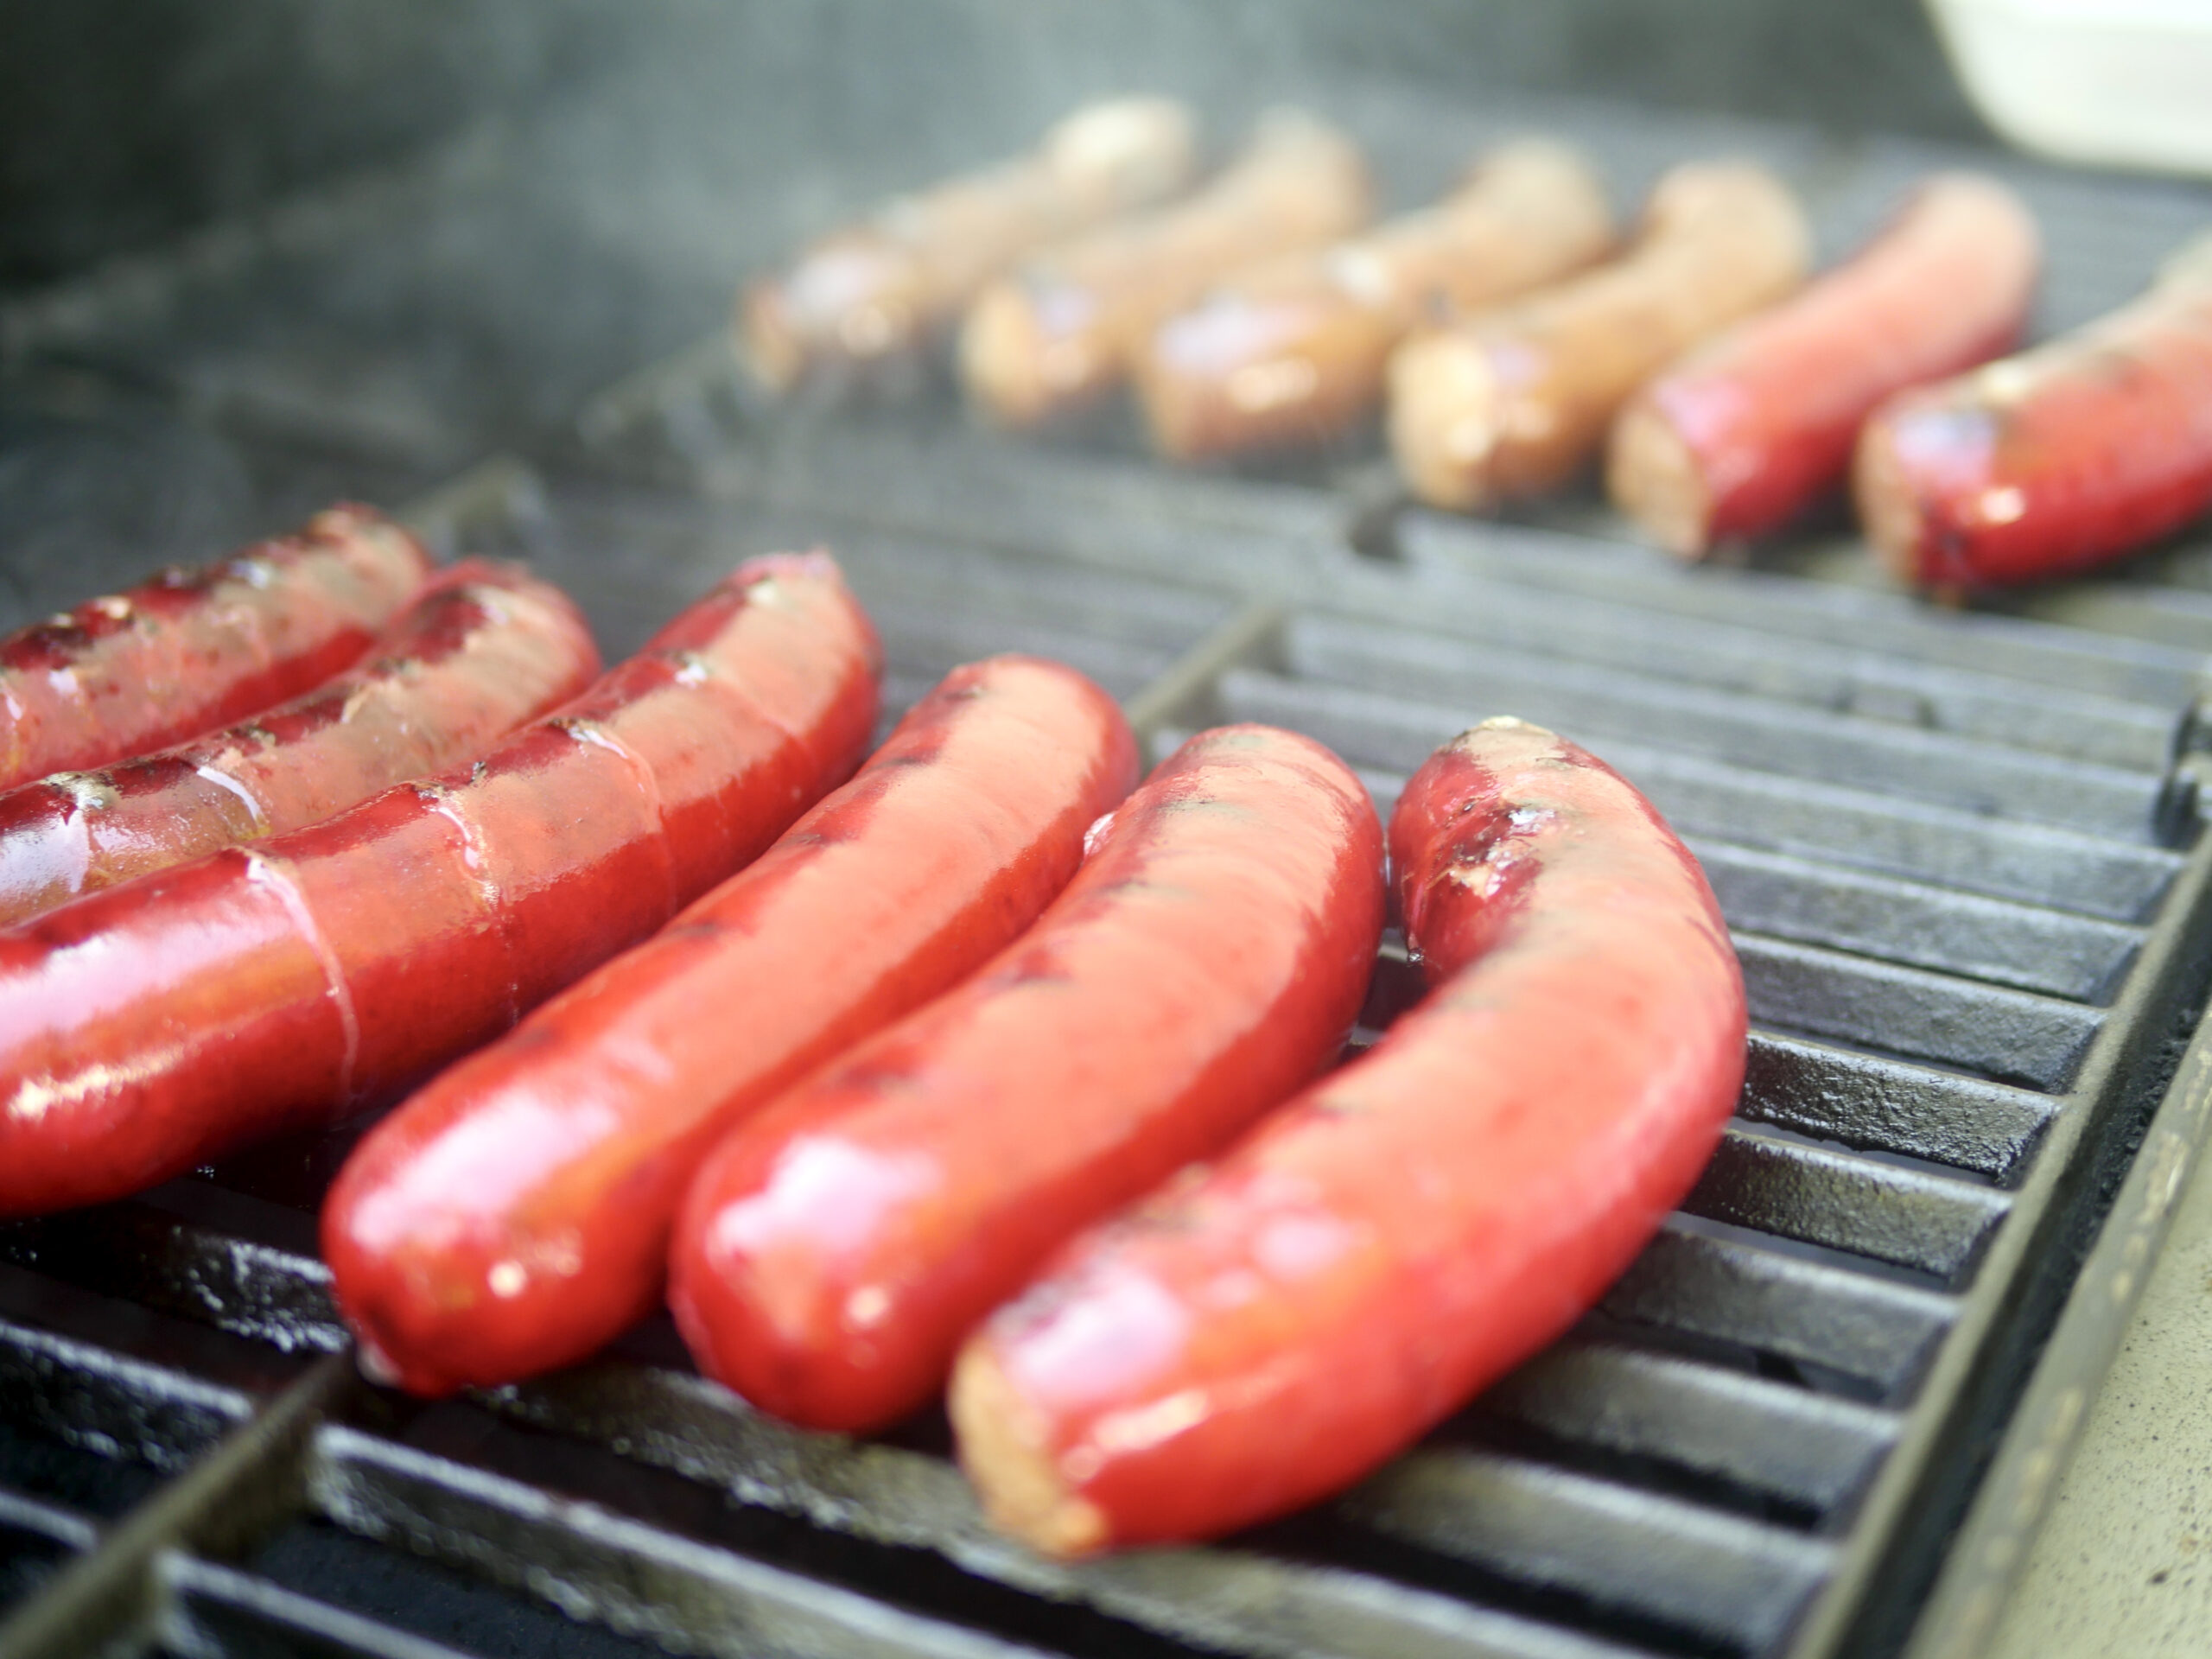 Grilling up a special meal for the Fourth of July